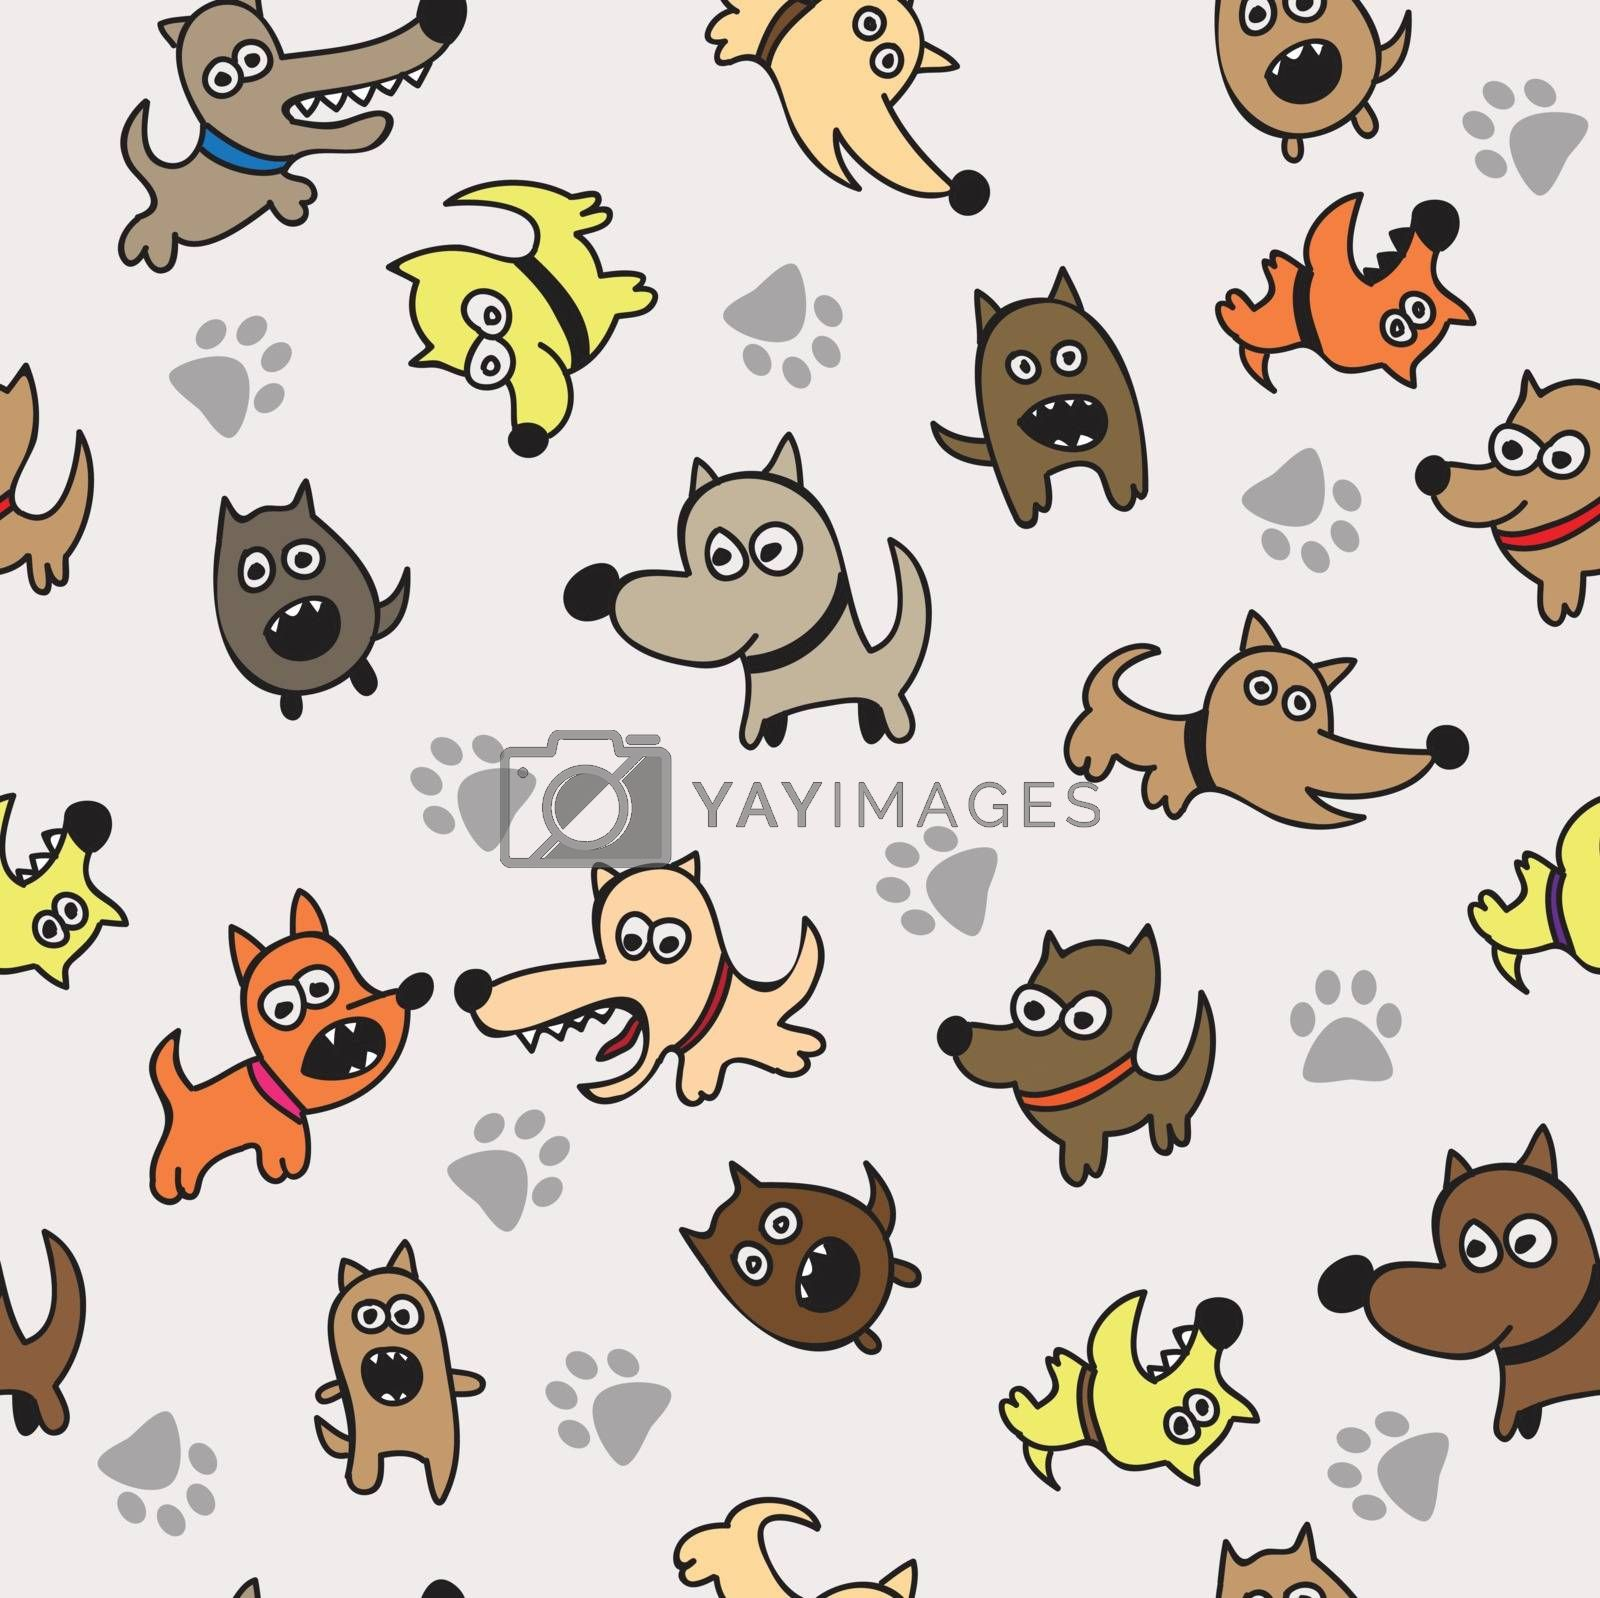 Cute dog seamless texture background - Seamless pattern